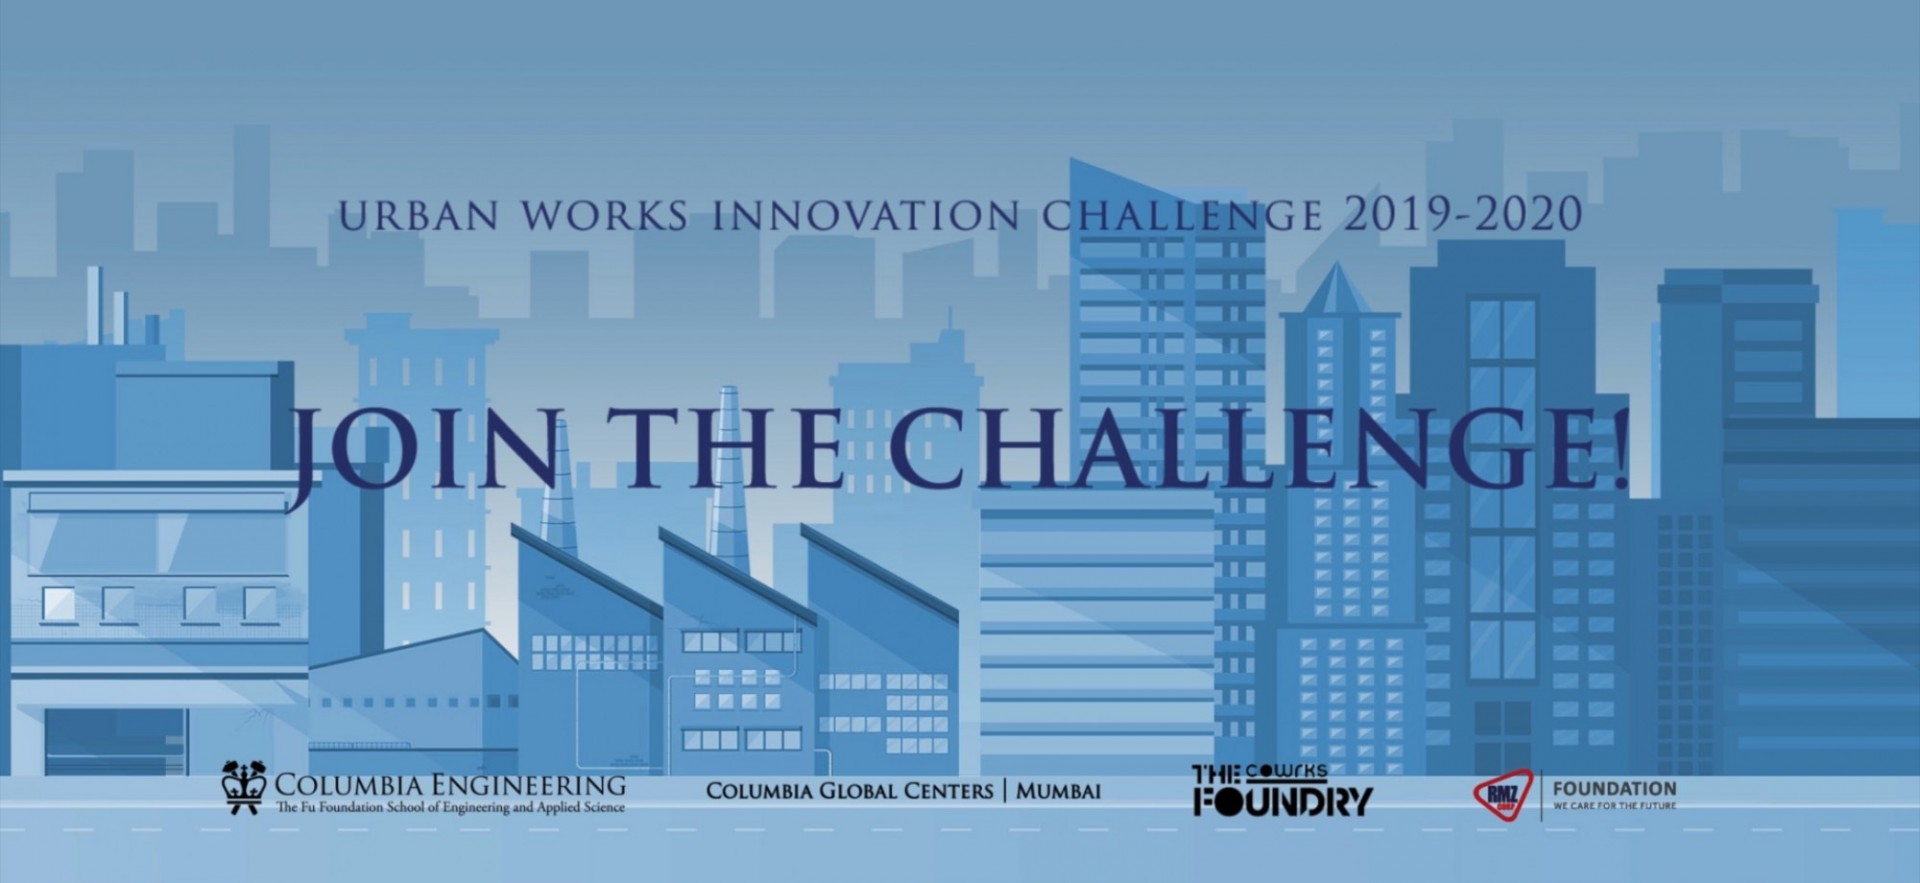 Columbia University's Urban works innovation challenge for start-ups in India